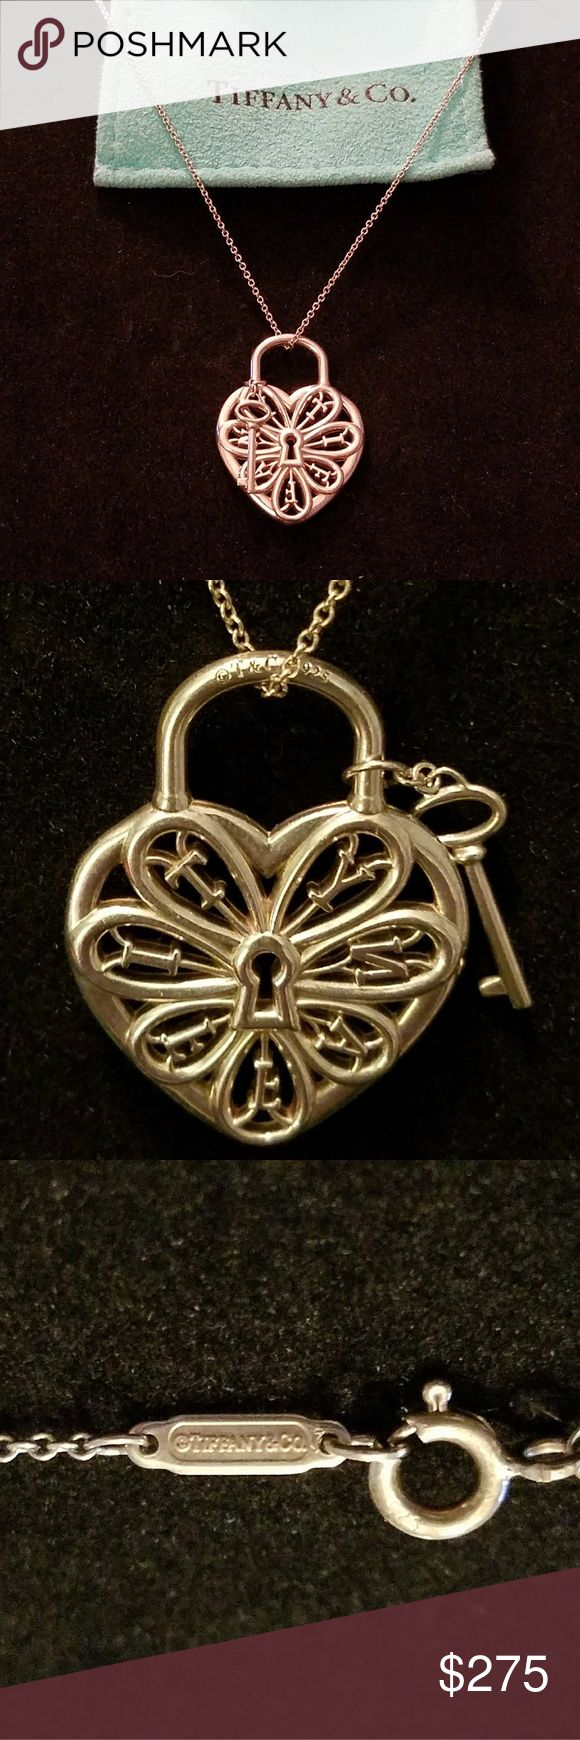 """Tiffany & Co. Filigree Heart Necklace Authentic Tiffany & Co. sterling silver 925 filigree heart with key pendant necklace for sale.  The chain is 18"""" long. The heart is approximately 1"""" wide. This was originally purchased at the Tiffany & Co. store at South Coast Plaza and has since been retired by Tiffany & Co. Please excuse the lighting in the photos, the necklace is indeed sterling silver. It was only worn a few times and is in excellent condition. Tiffany & Co. Jewelry Necklaces"""